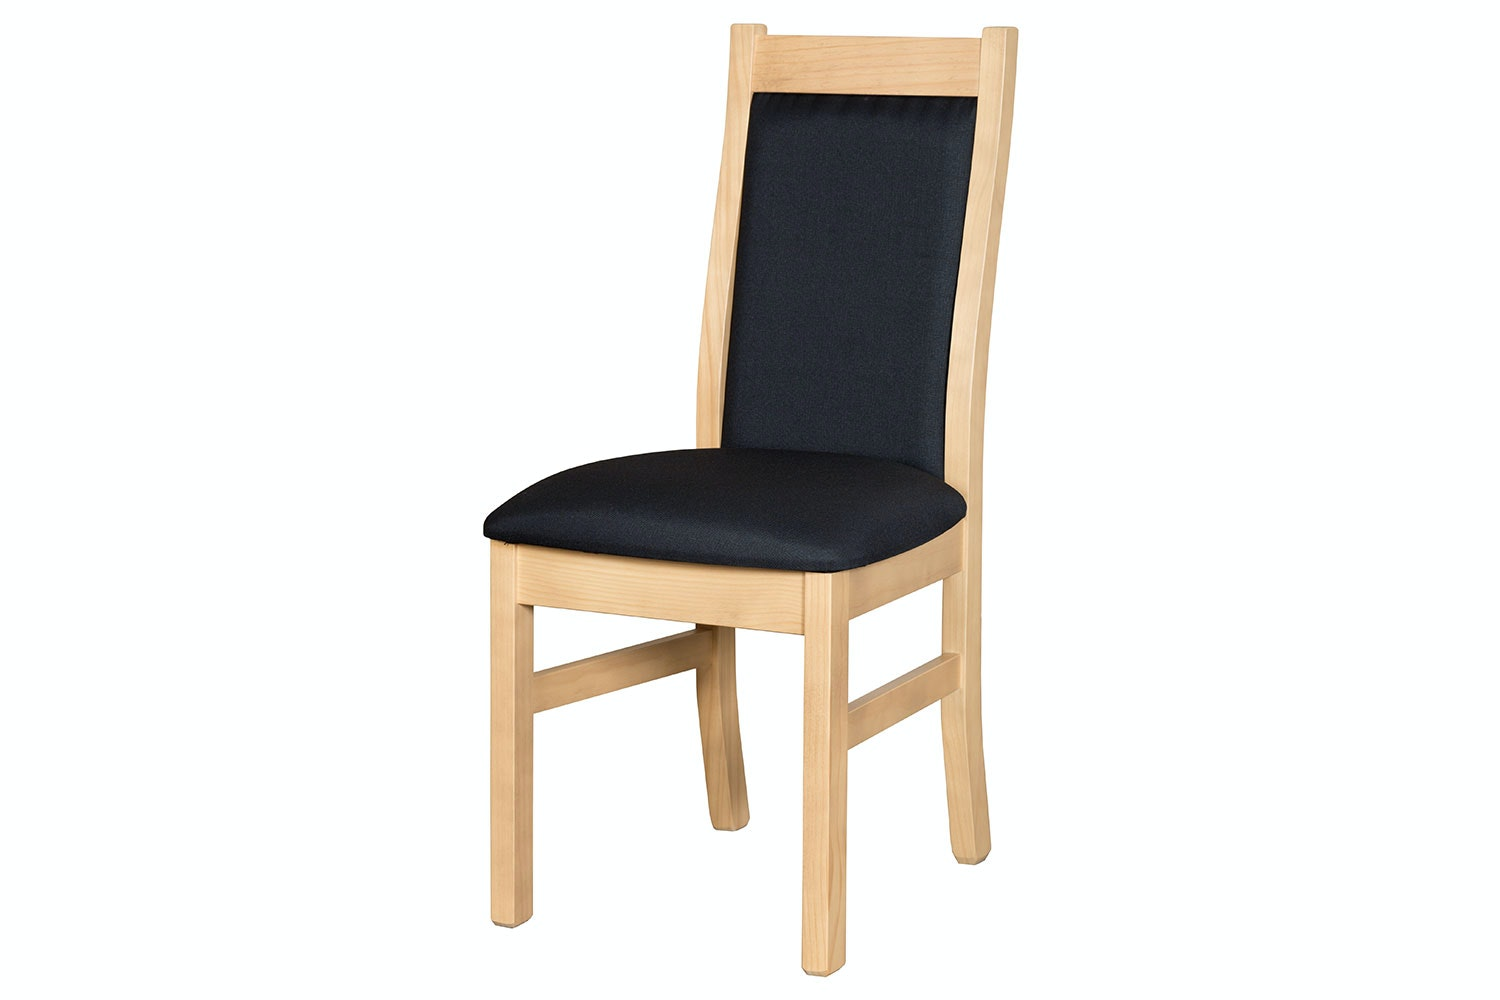 Ferngrove Padded Back Dining Chair by Coastwood Furniture